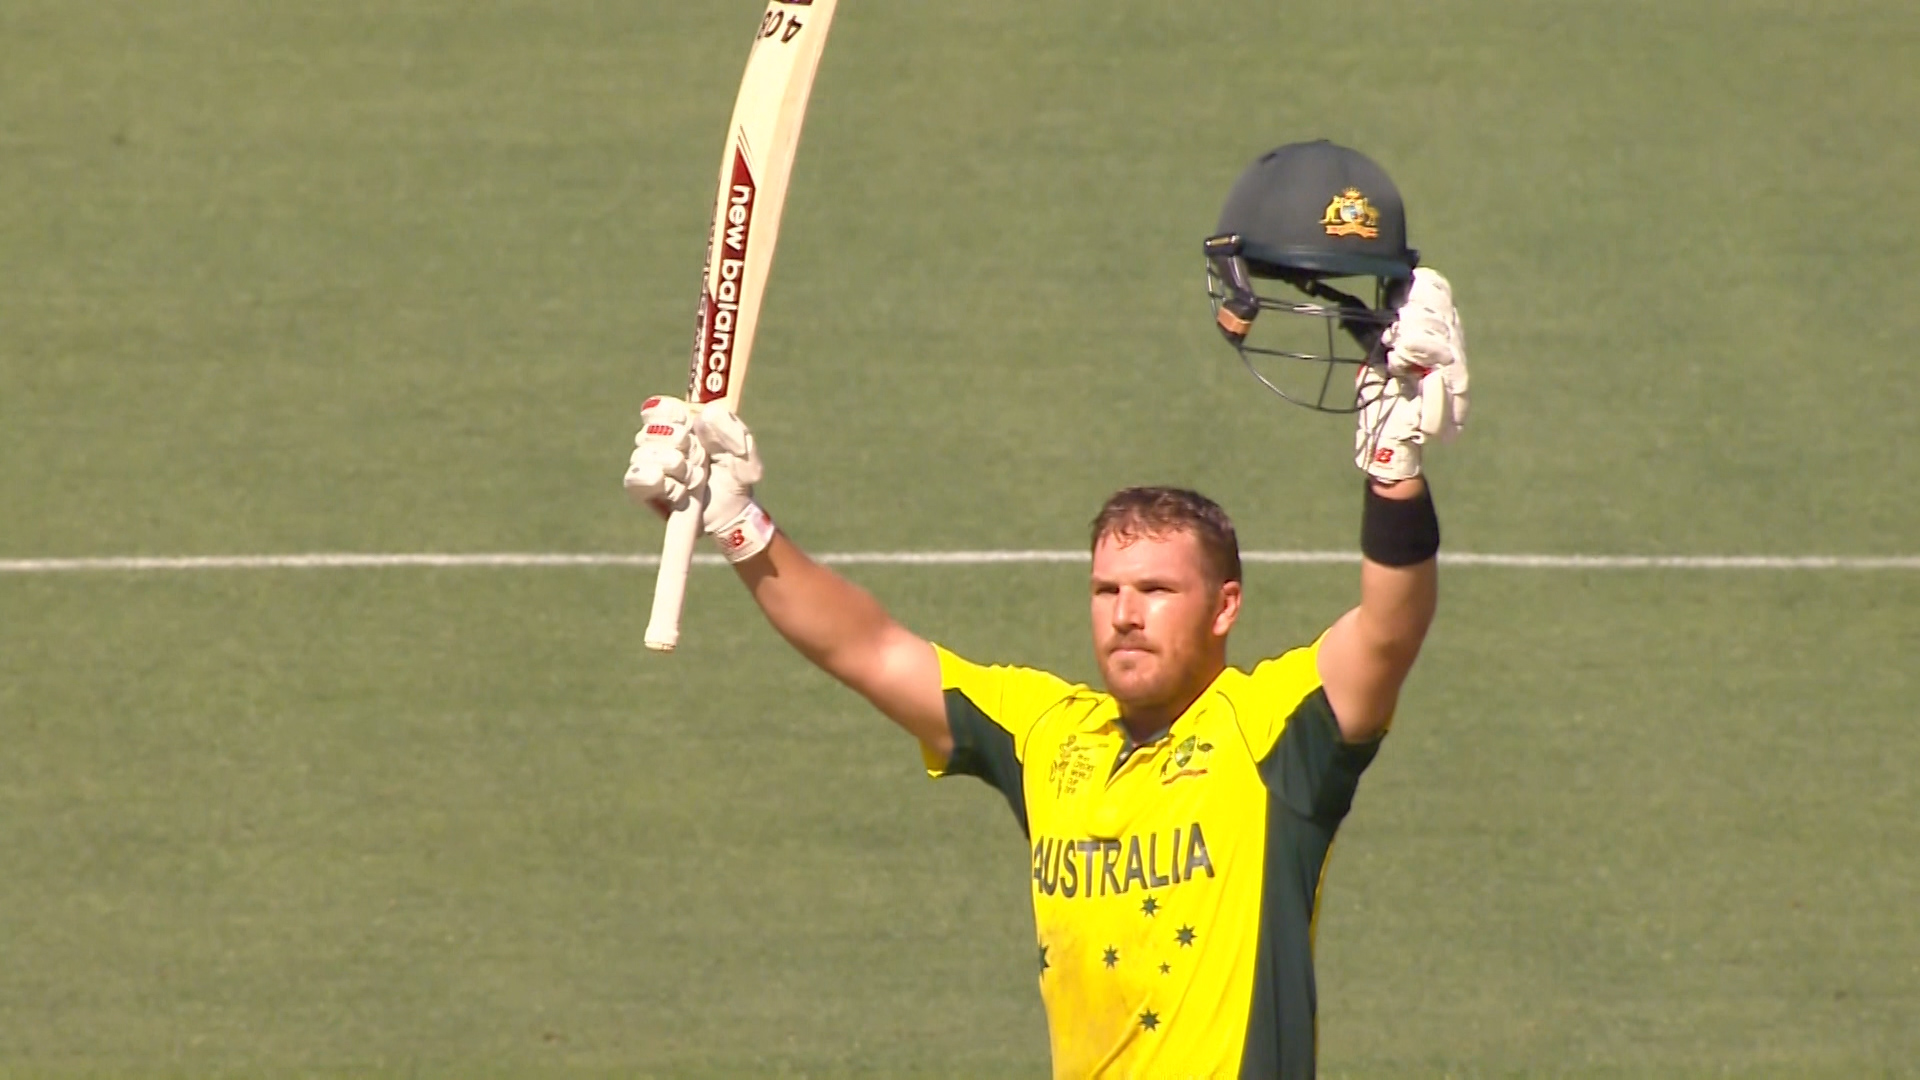 Destructive innings by Aaron Finch – AUS vs ENG